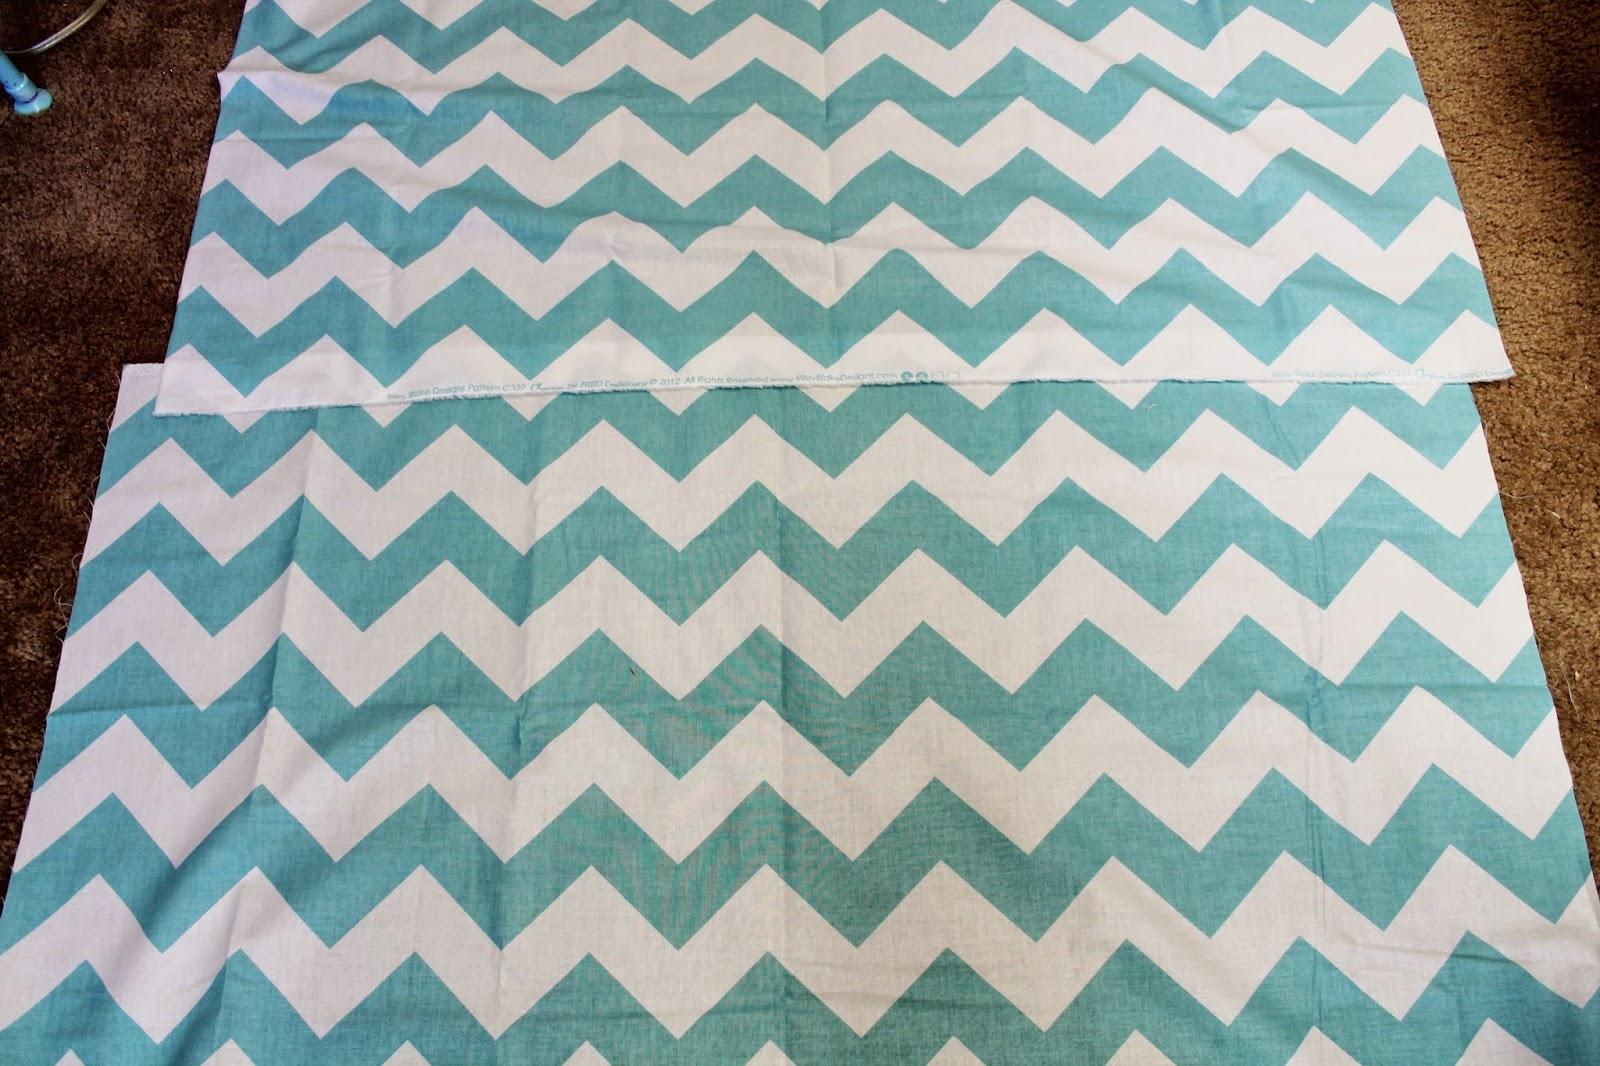 Easy Chevron Curtains  Find It, Make It, Love It. Aubergine Living Room. Amazon Living Room. Paint Colors For Living Room With Dark Brown Furniture. Ideas For Feature Wall In Living Room. Dining Room Modern Furniture. Wall Color Combinations For Living Room. Stickley Dining Room Furniture For Sale. Living Room Black Sofa Decorating Ideas